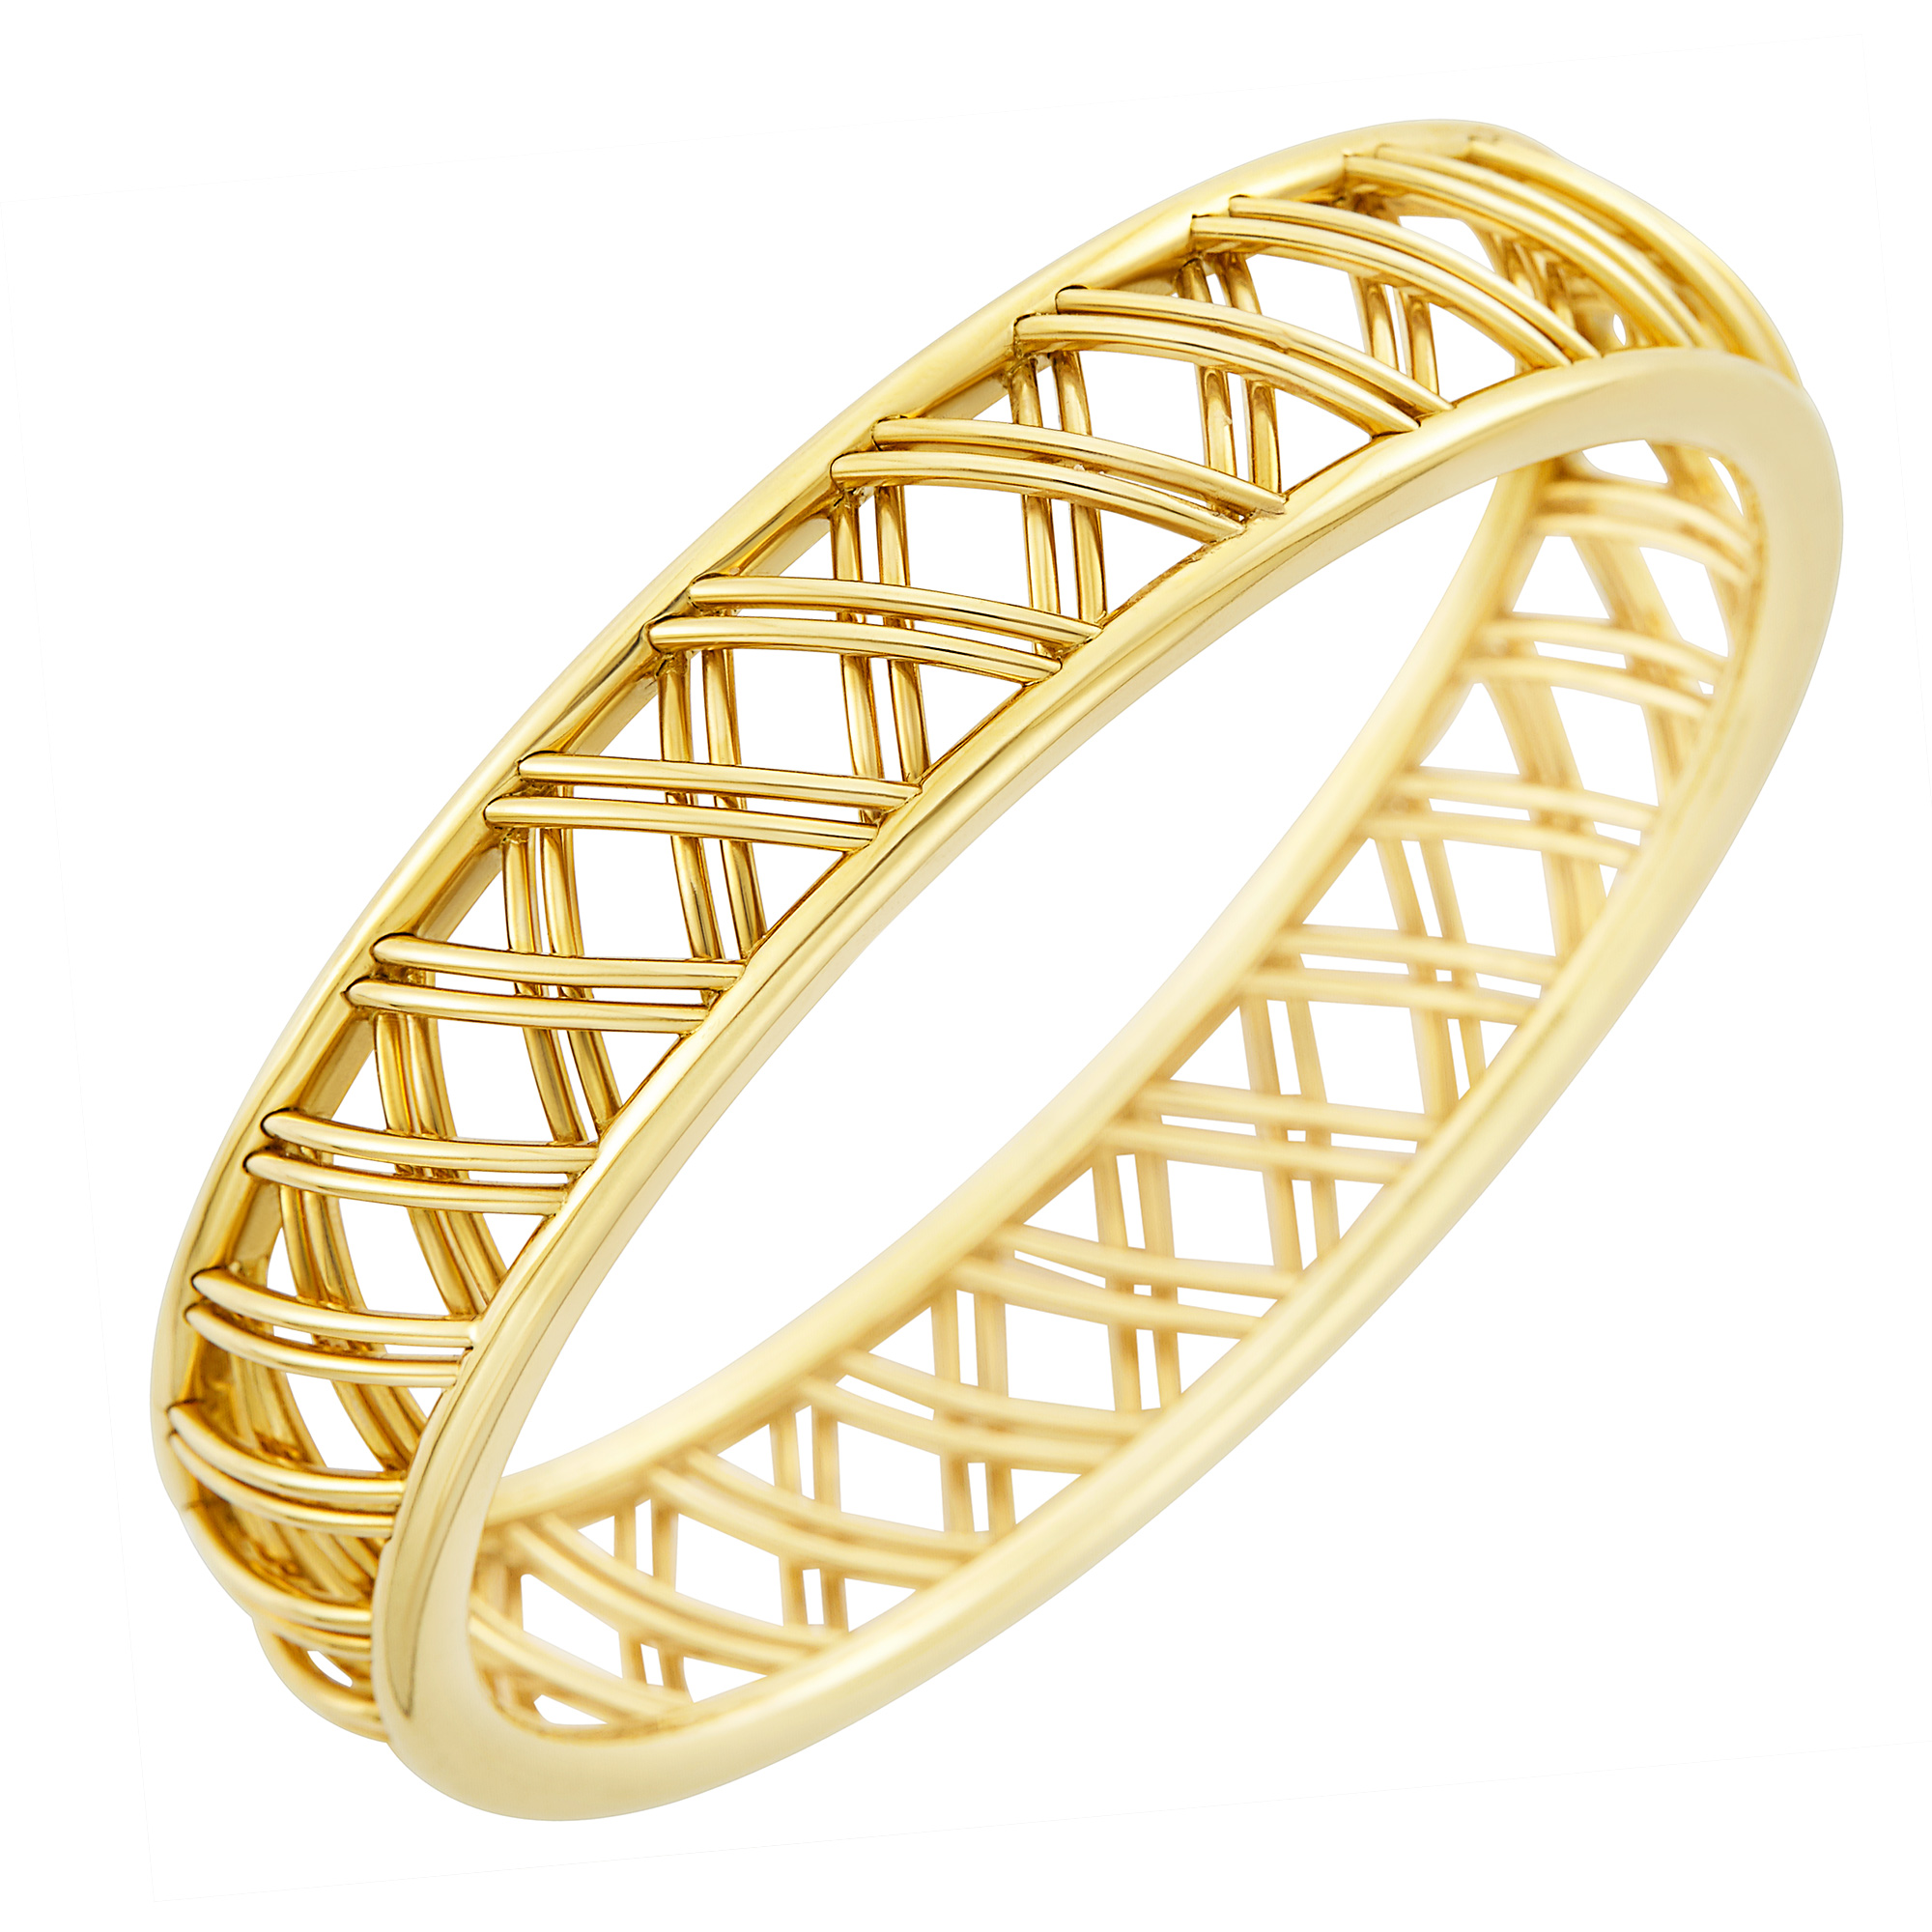 Lot image - Gold Trellis Bangle Bracelet, Tiffany & Co., Paloma Picasso